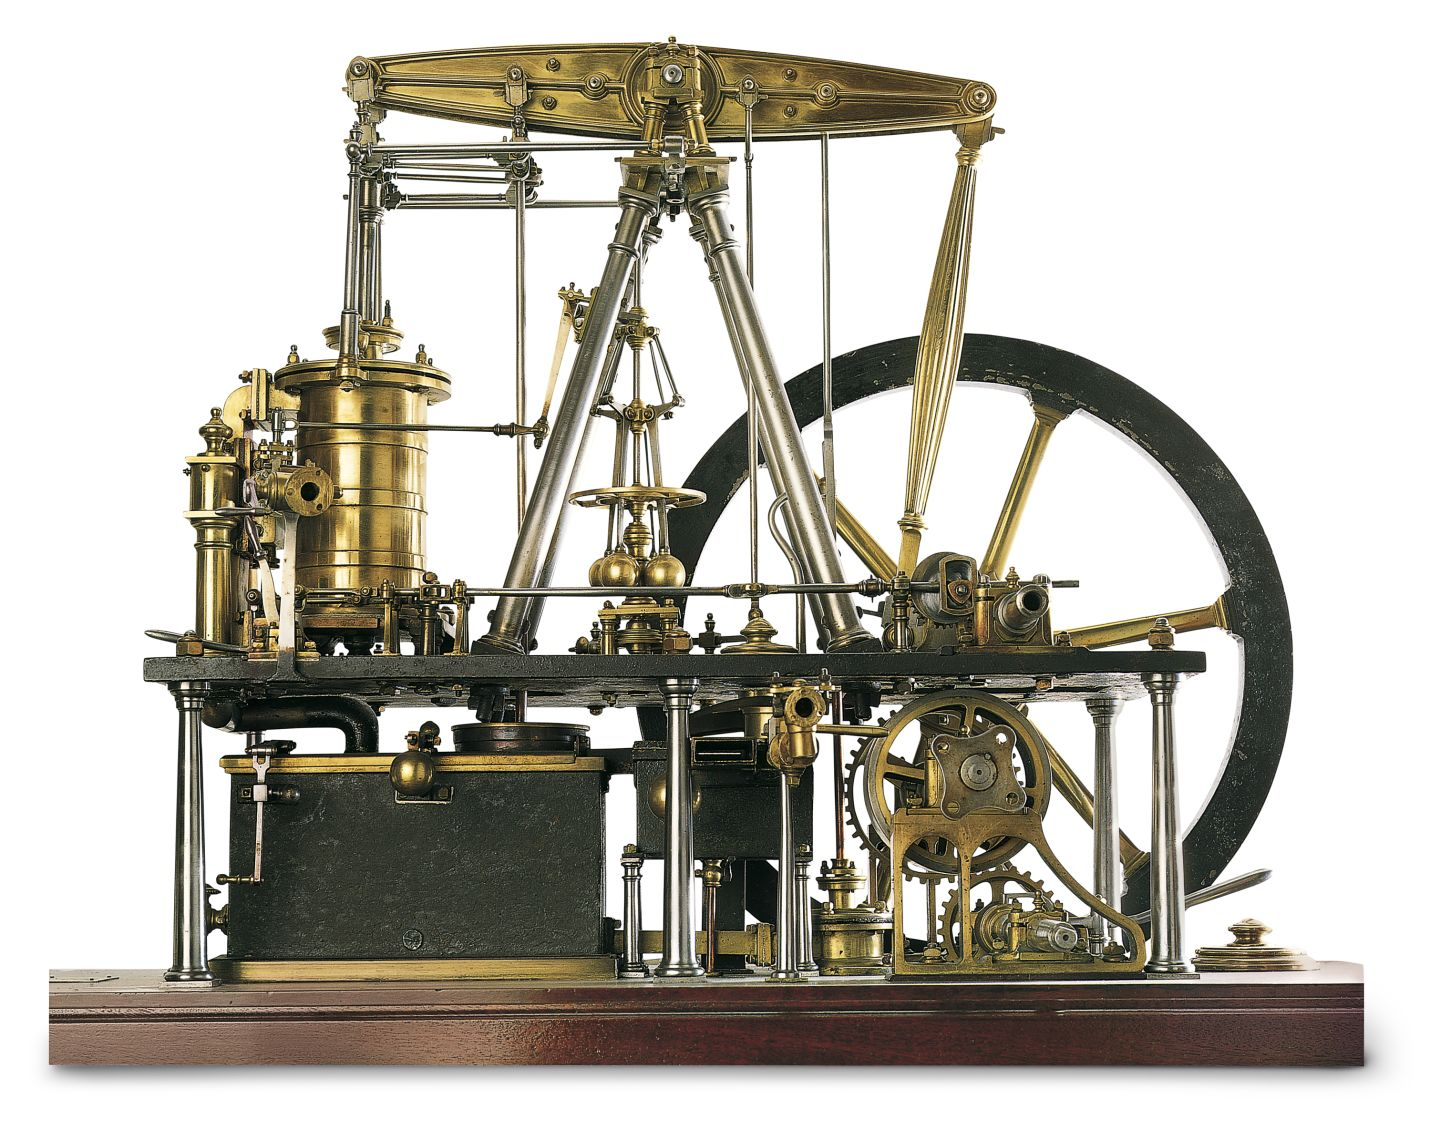 important inventions of the early nineteenth The industrial revolution of the early nineteenth century produced some of the most important inventions in american history the five most important inventions among these were the reaper, the cotton gin, the steam.